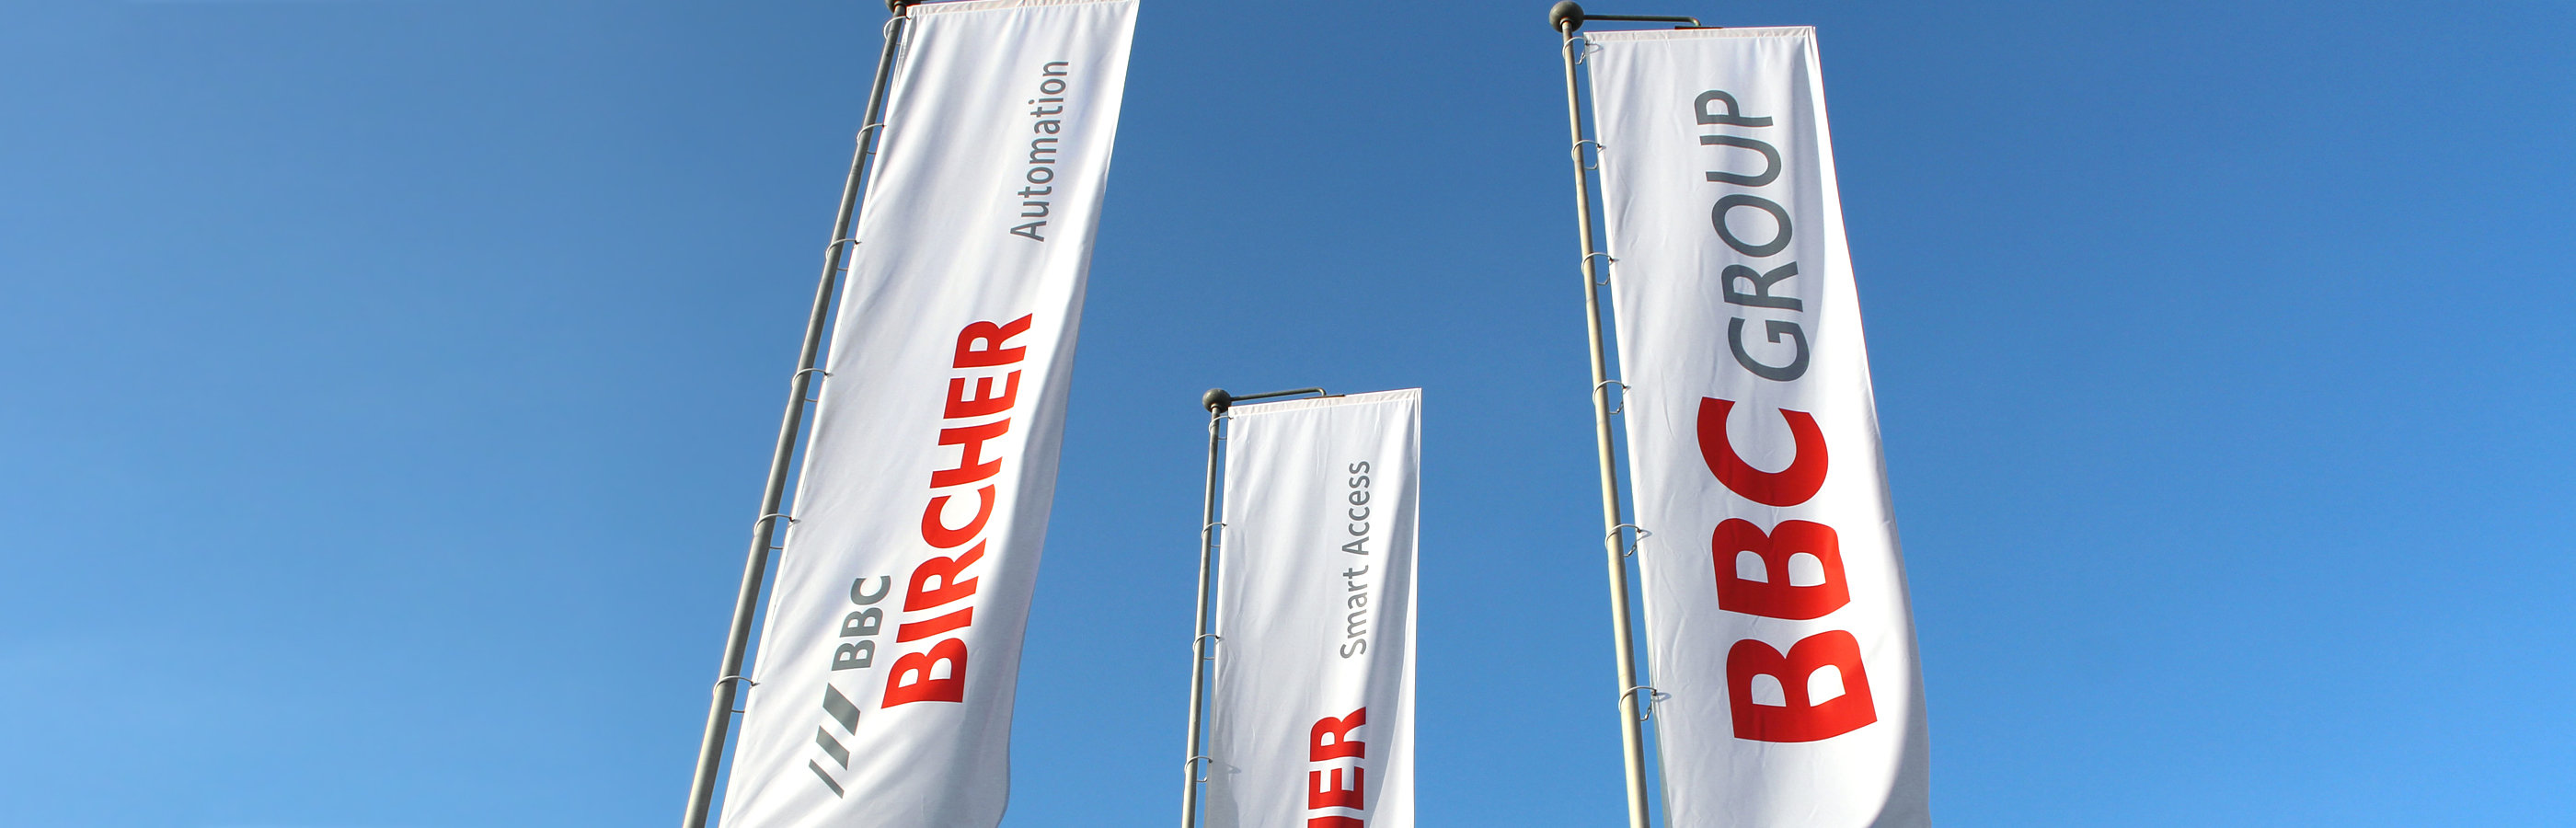 Fahnen BBC Group - Bircher ProcessControl